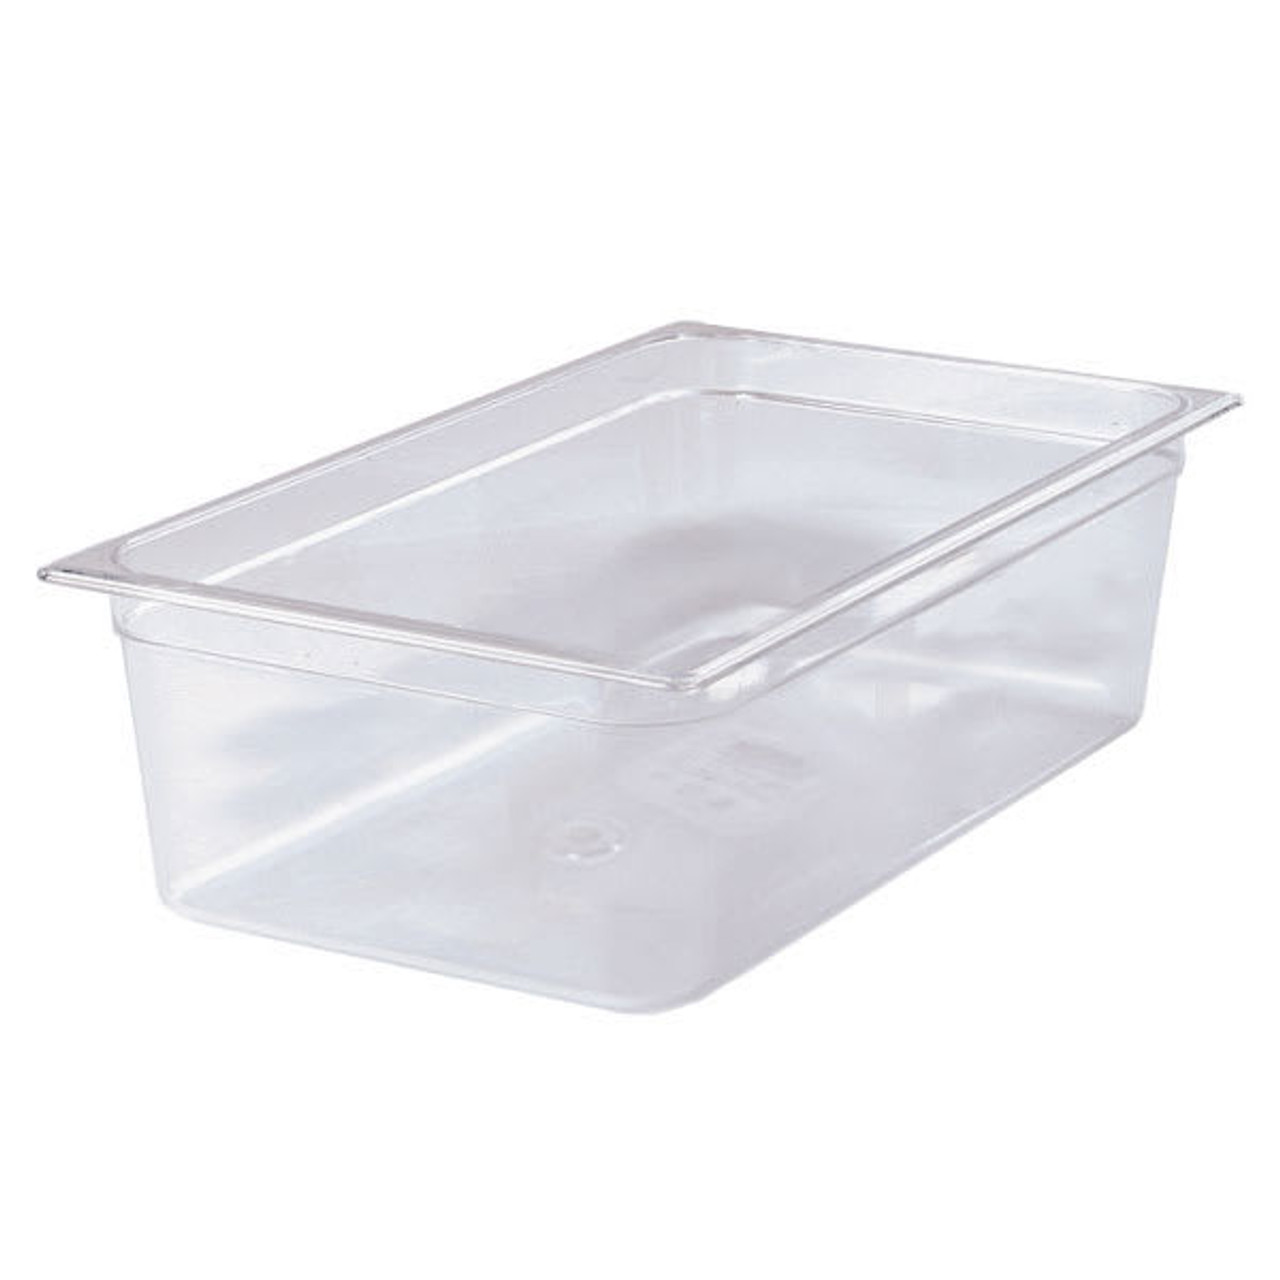 Rubbermaid Gastronorm Food Pan 1/1 200 mm - FG133P00CLR